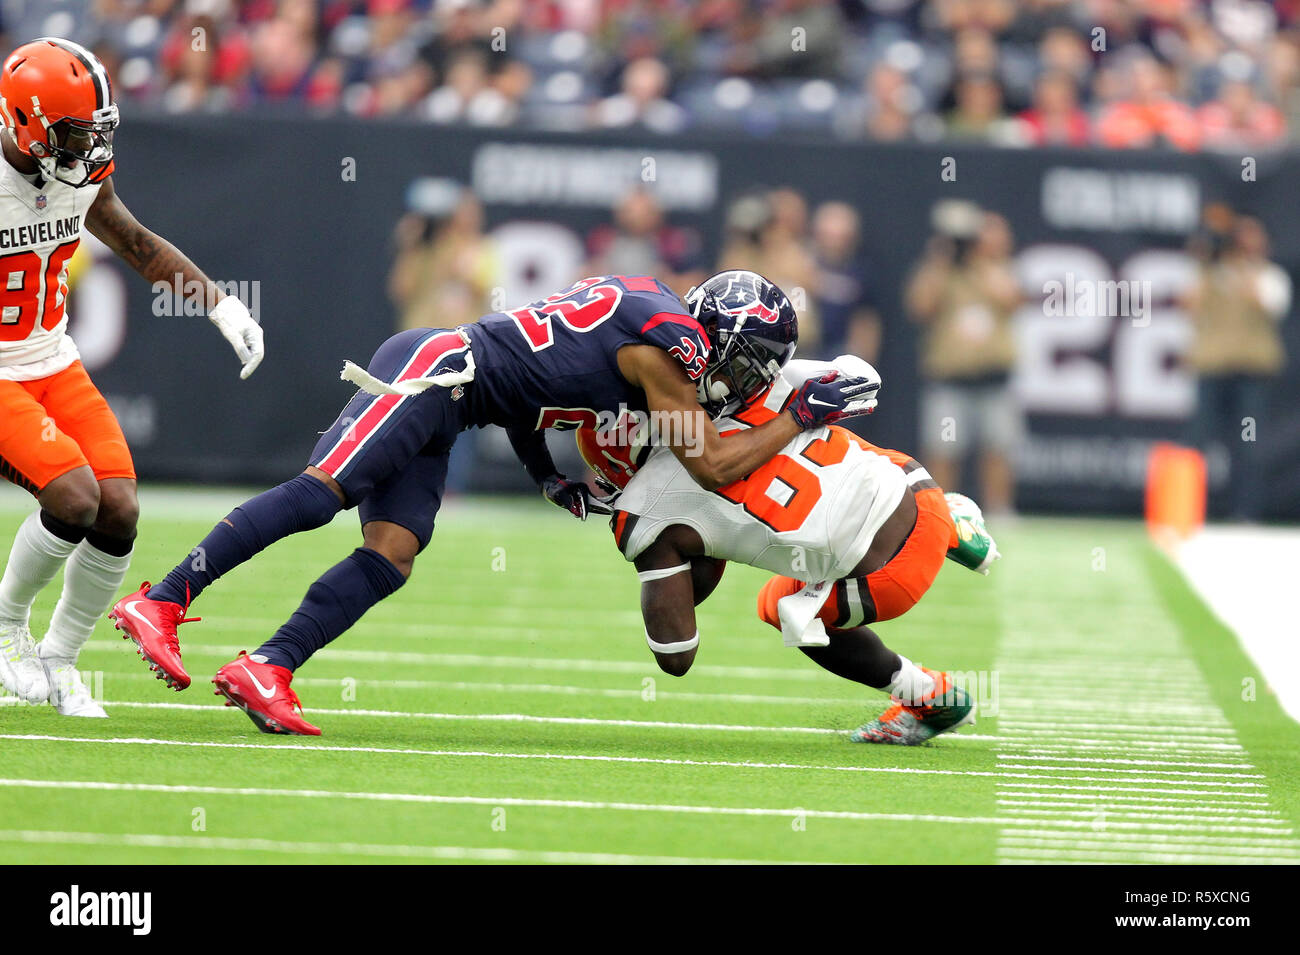 Houston, Texas, USA. 2nd Dec, 2018. Cleveland Browns tight end David Njoku (85) is tackled by Houston Texans defensive back Aaron Colvin (22) after a pass reception during the third quarter of the NFL regular season game between the Houston Texans and the Cleveland Browns at NRG Stadium in Houston, TX on December 2, 2018. Credit: Erik Williams/ZUMA Wire/Alamy Live News - Stock Image